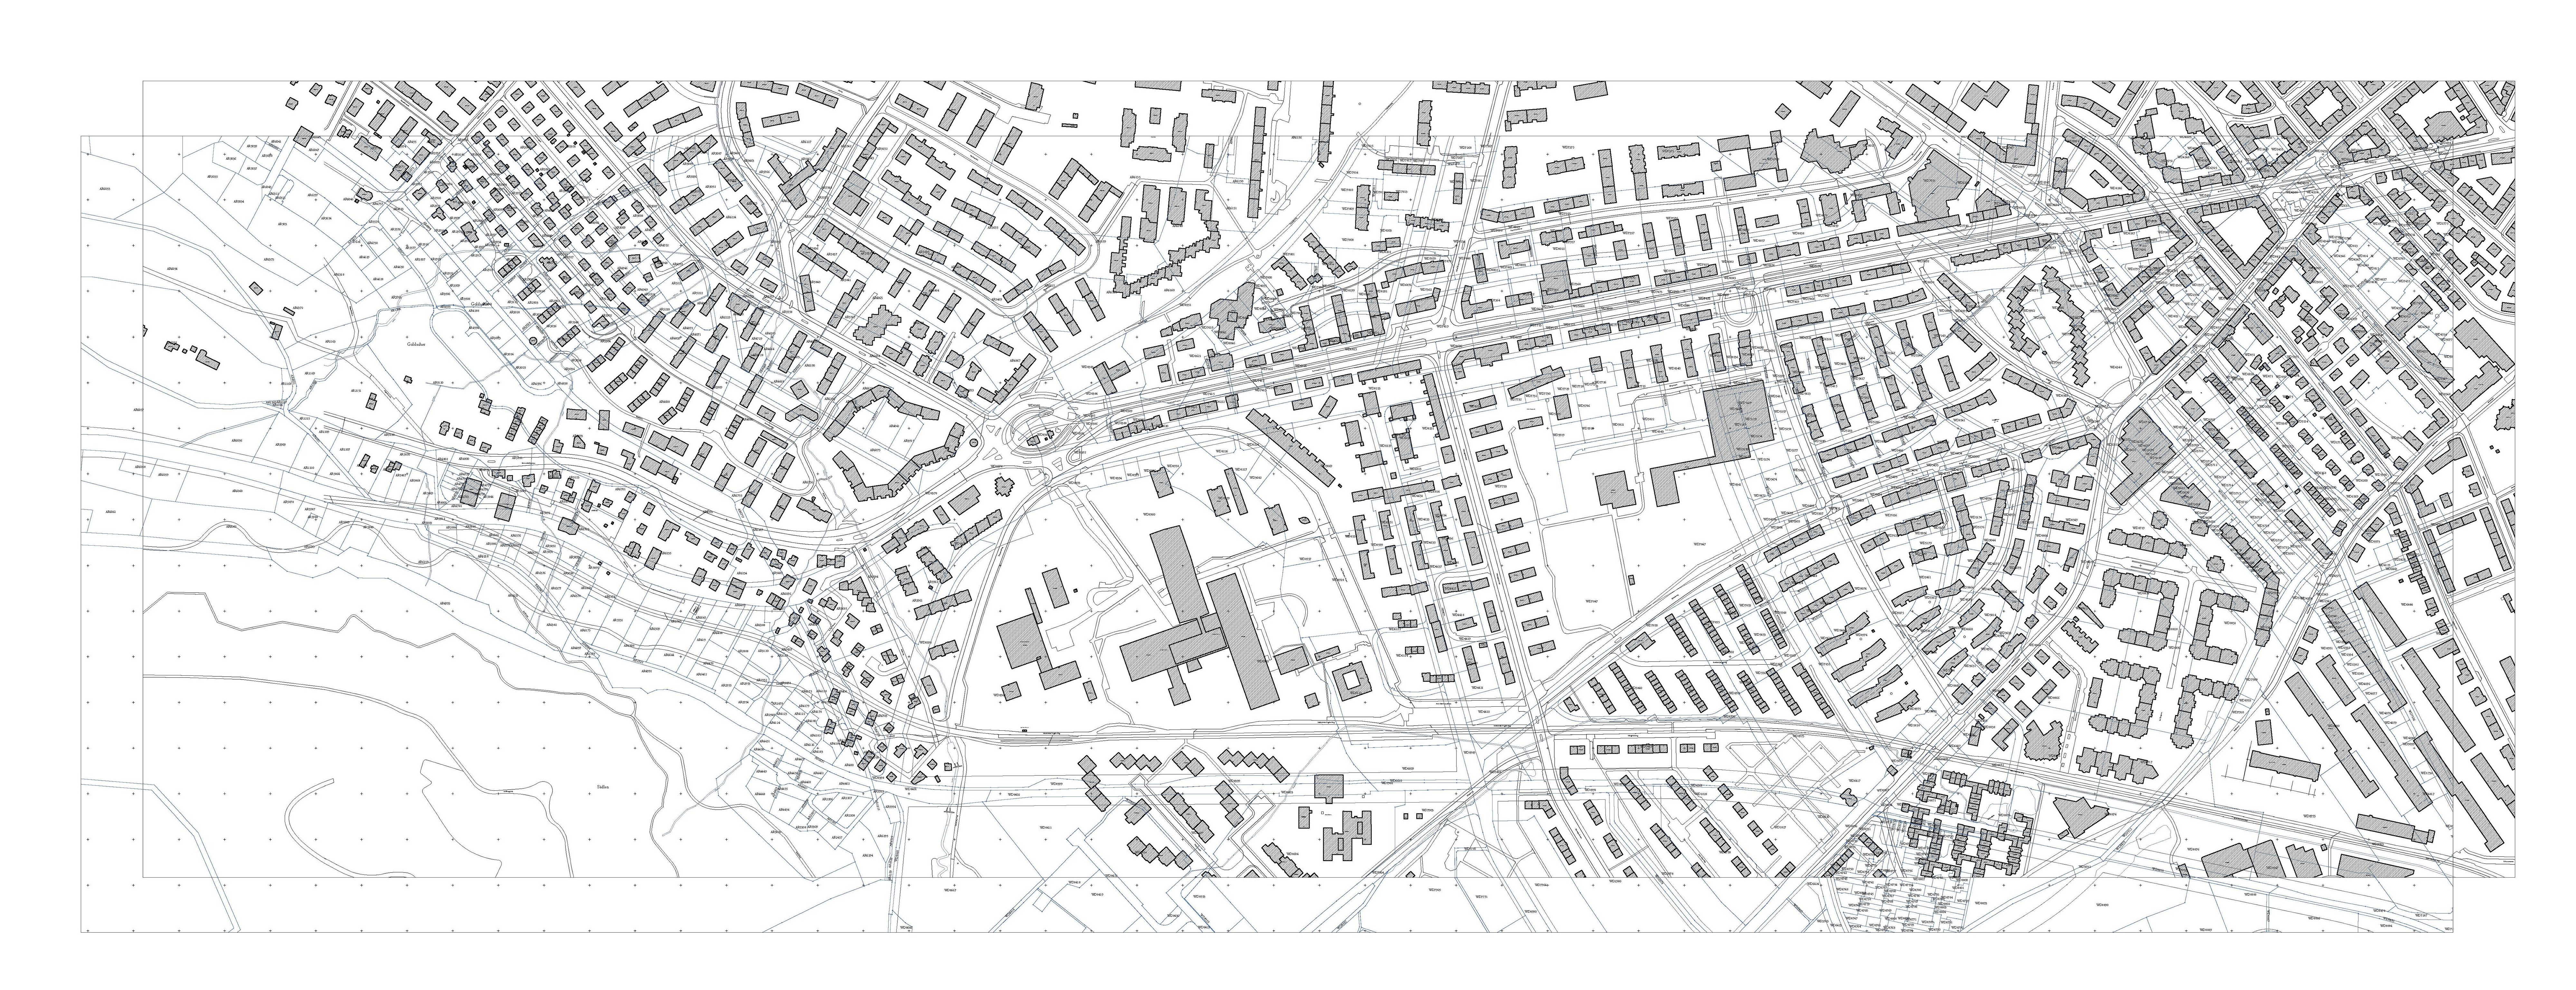 The Beauty of the Cadastral Map by Jan Engelke & Lukas Fink (183AC on dominion land survey, aerial map, construction map, ohio indian reservations map, land description, wetlands map, survey map, political map, construction surveying, agriculture map, recorder of deeds, lodz poland map, education map, thematic map, topographical map, geologic map, choropleth map, climate map, geospatial map, aeronautical chart, topographic map, pictorial maps, crown land, contemporary world map, drainage map, land map, taiwan population density map, silesia prussia map, nautical chart, torrens title, gis map, real property,